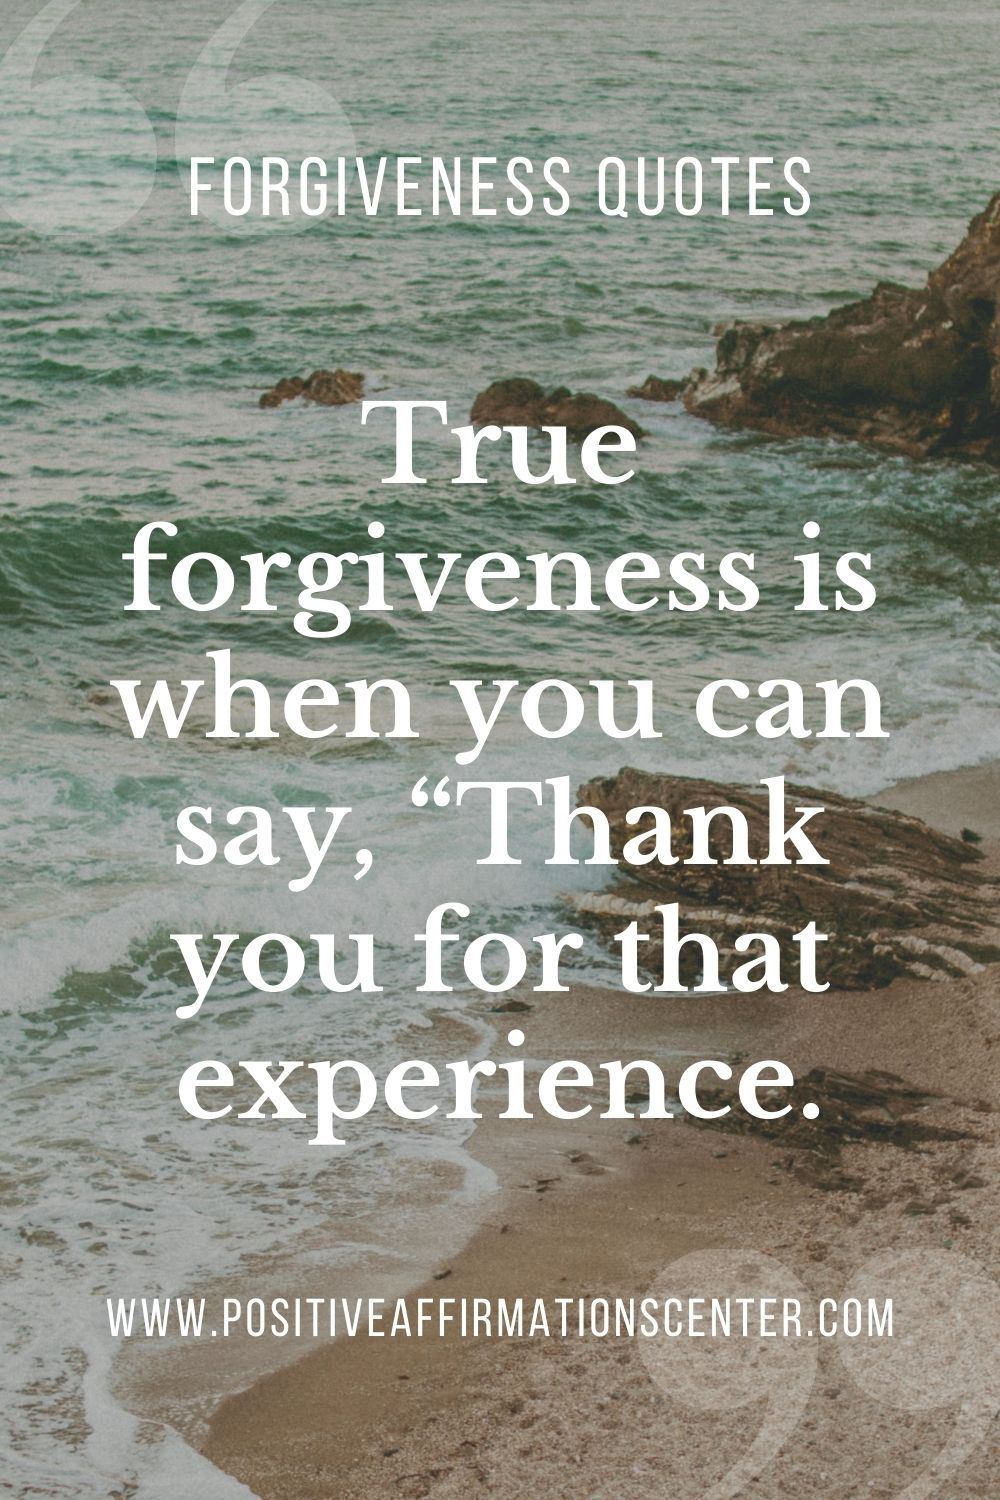 Amazing 20 Quotes About Forgiving Others To Let Go of Past